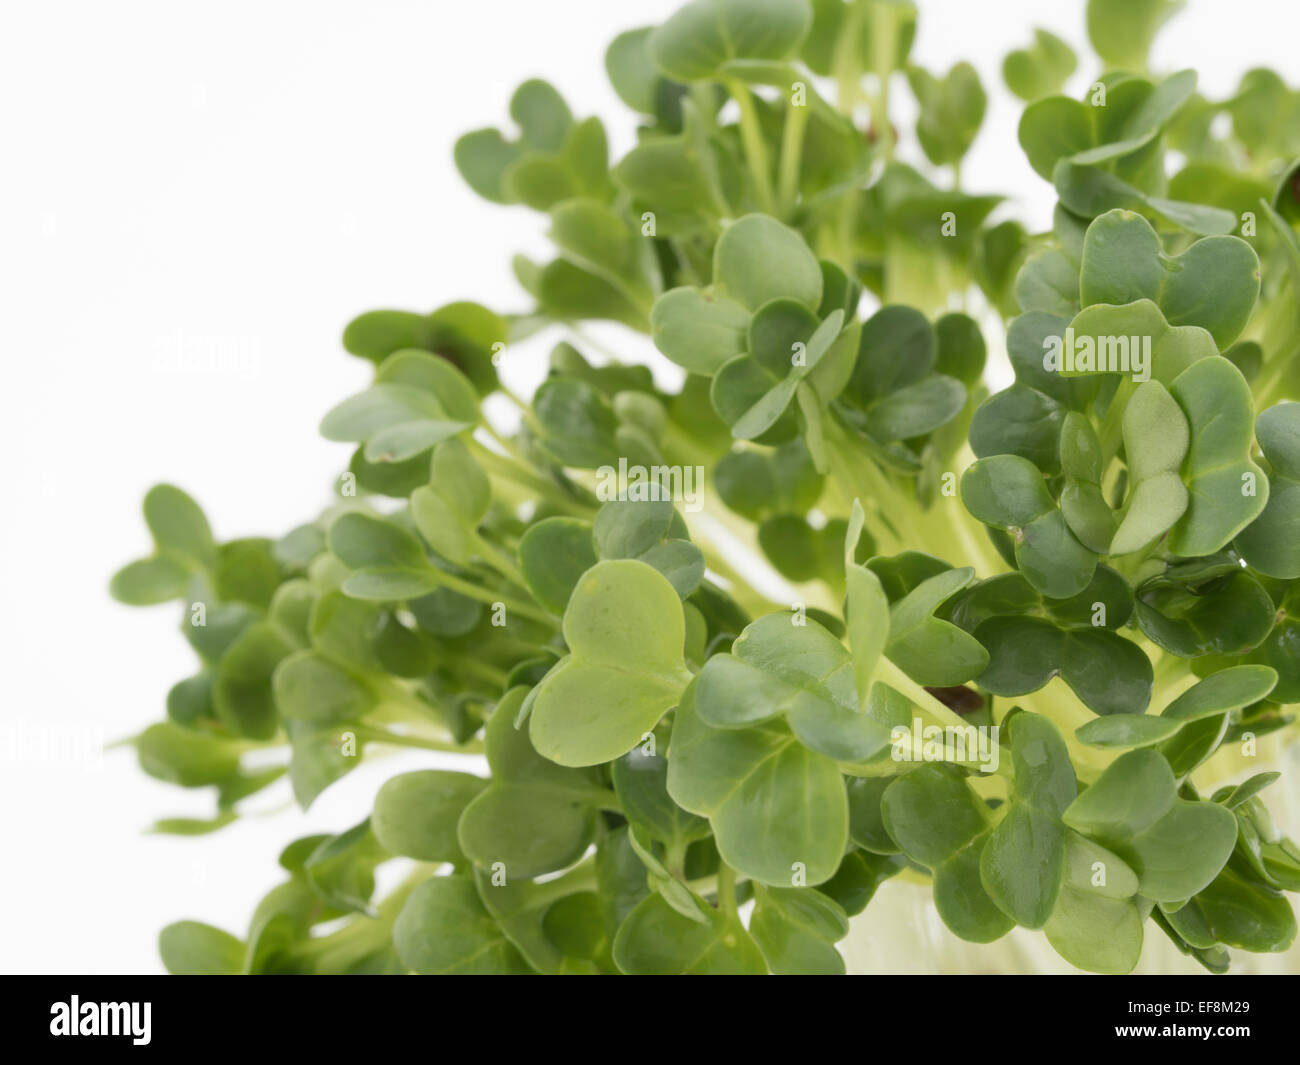 Cress / garden cress. edible herb used in salads - Stock Image